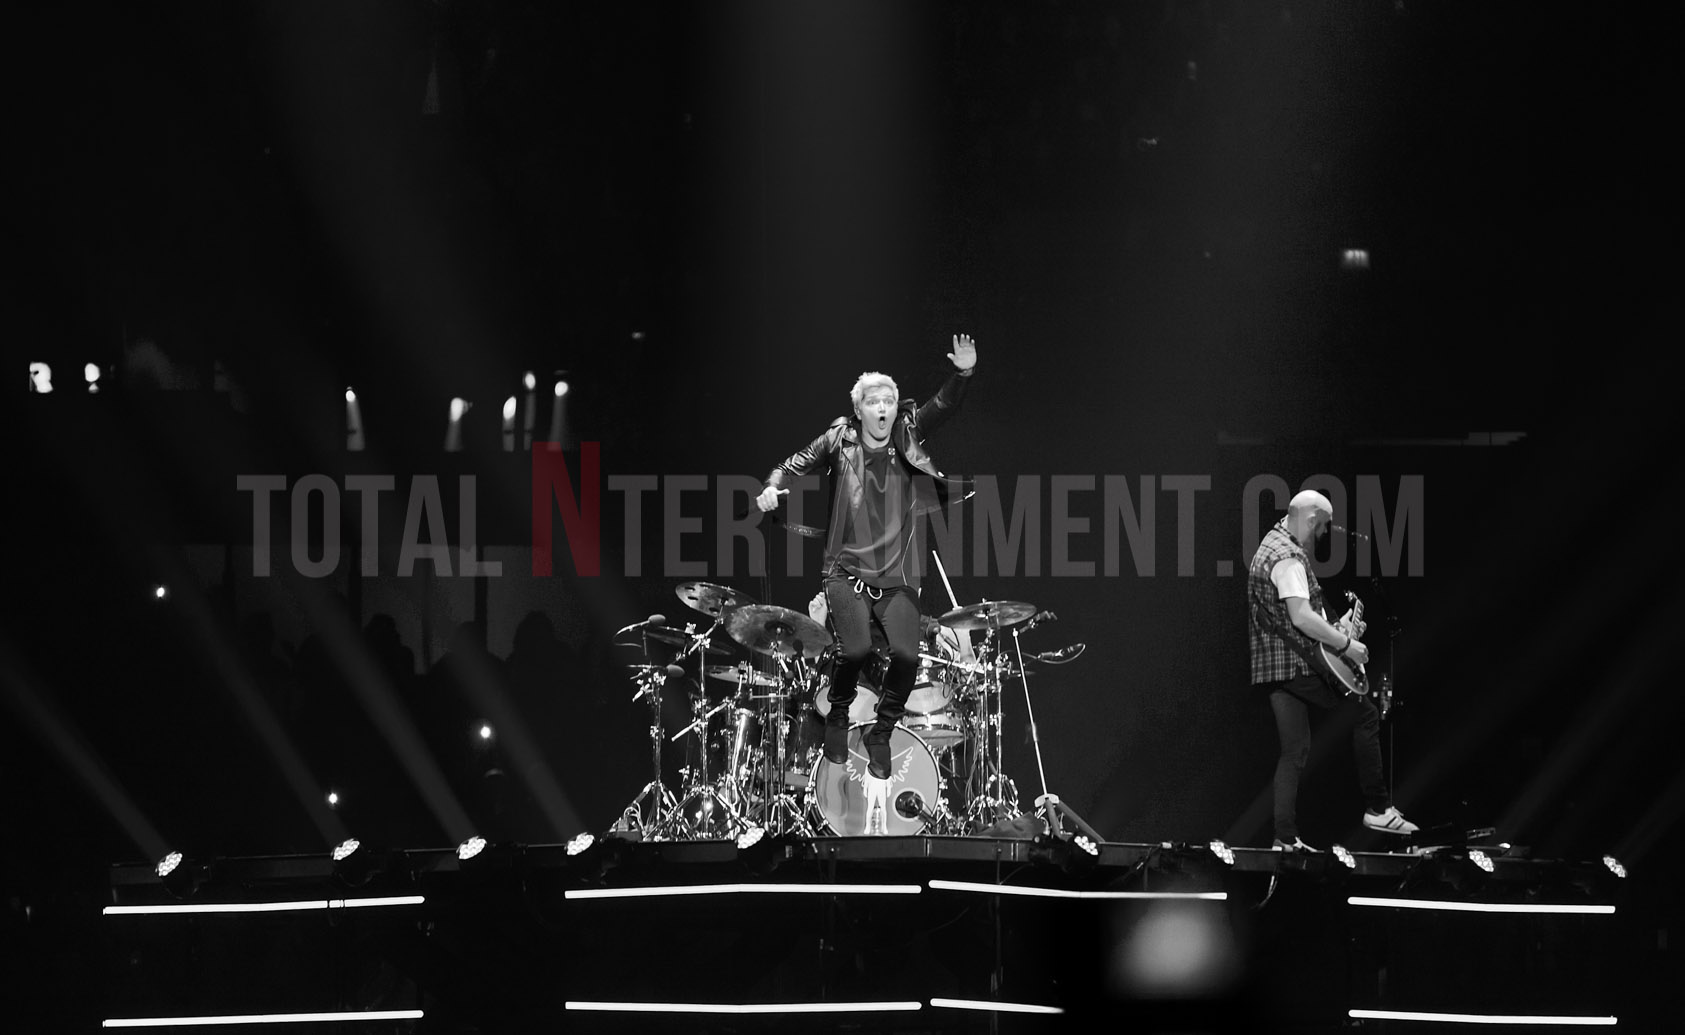 The Script, Liverpool, Jo Forrest, totalntertainment, Freedom Child tour